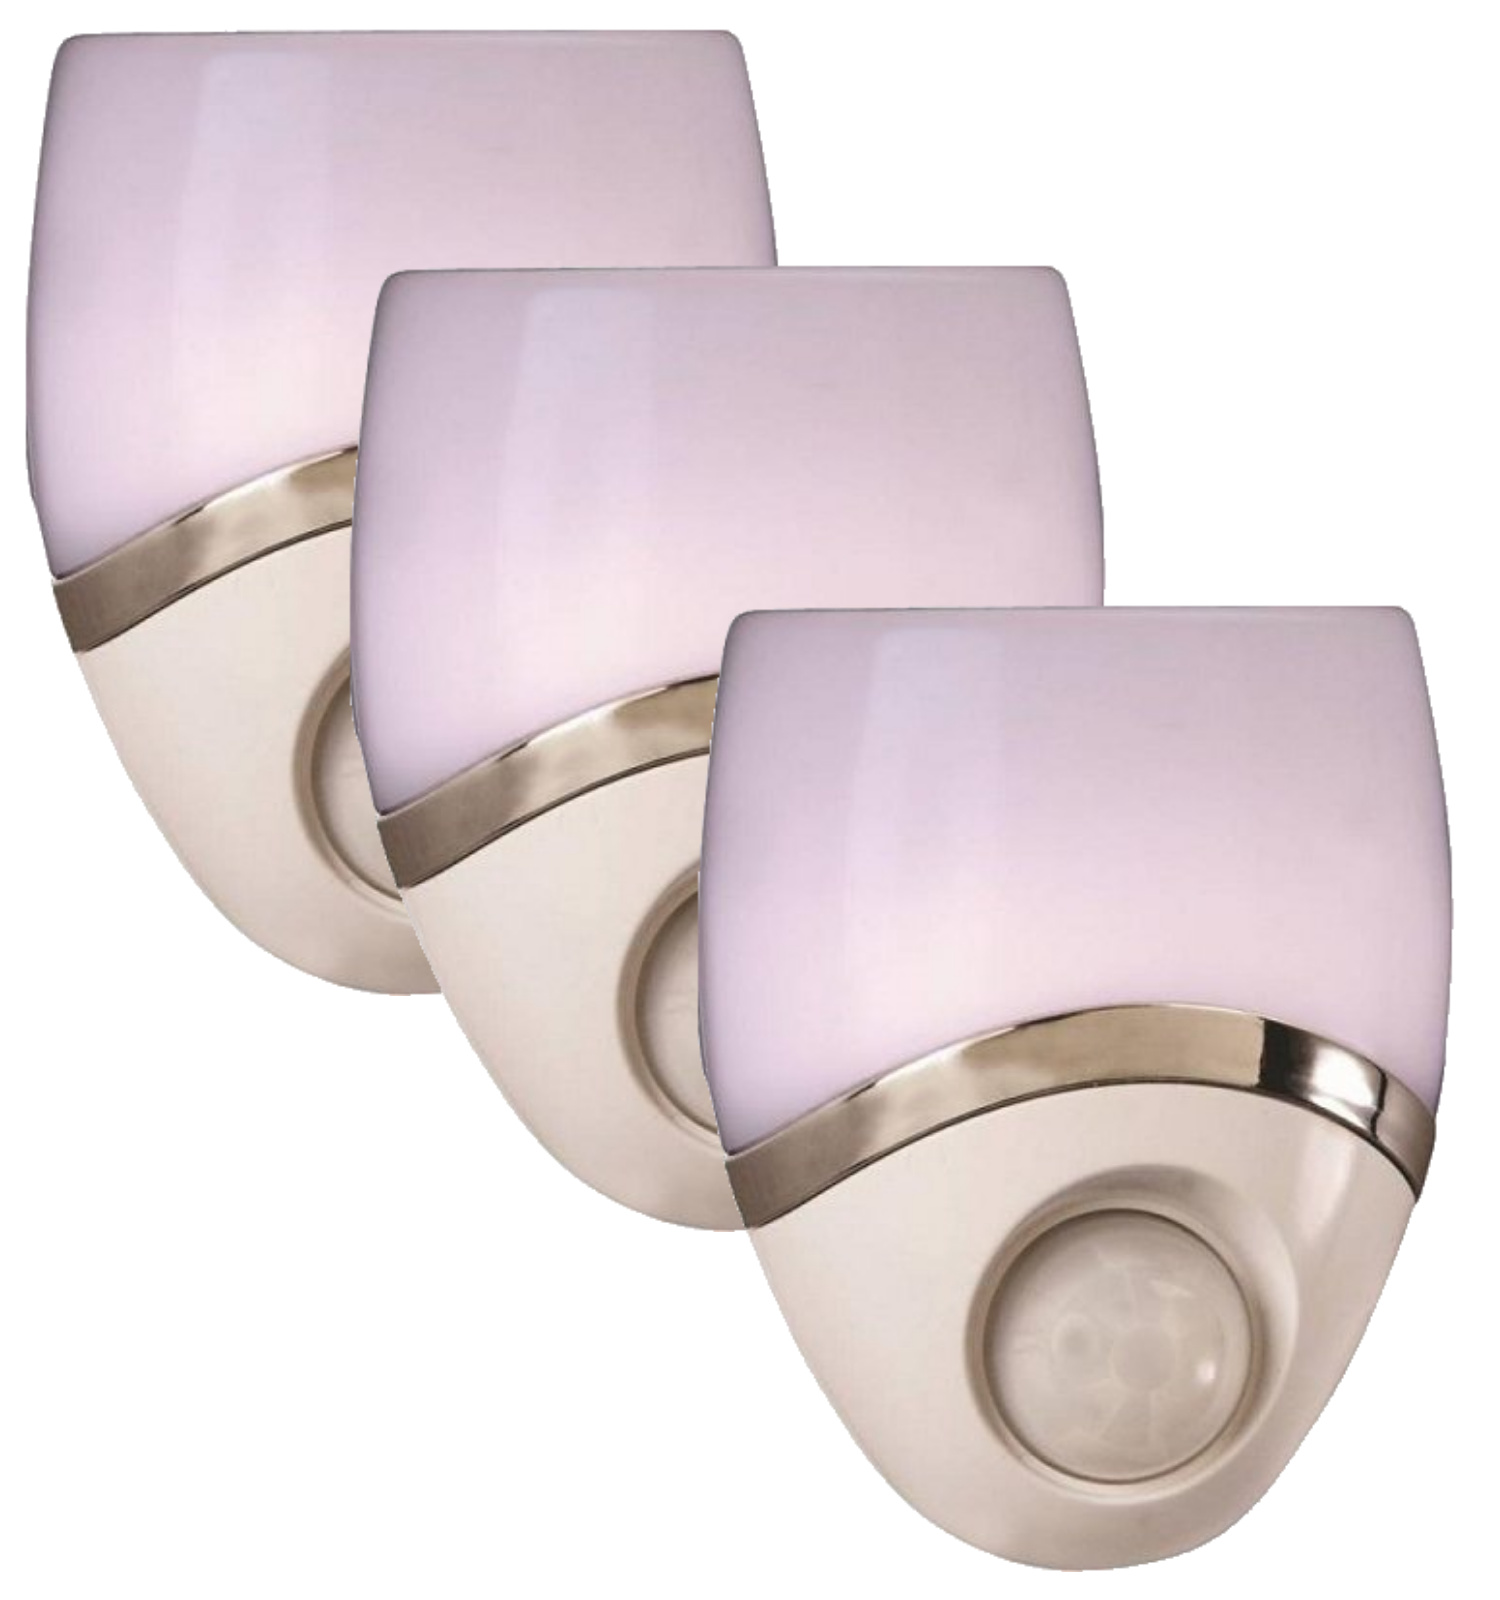 Amerelle 73092CC Geometric Motion Activated LED Night Light, White/Nickel (3 Pack)